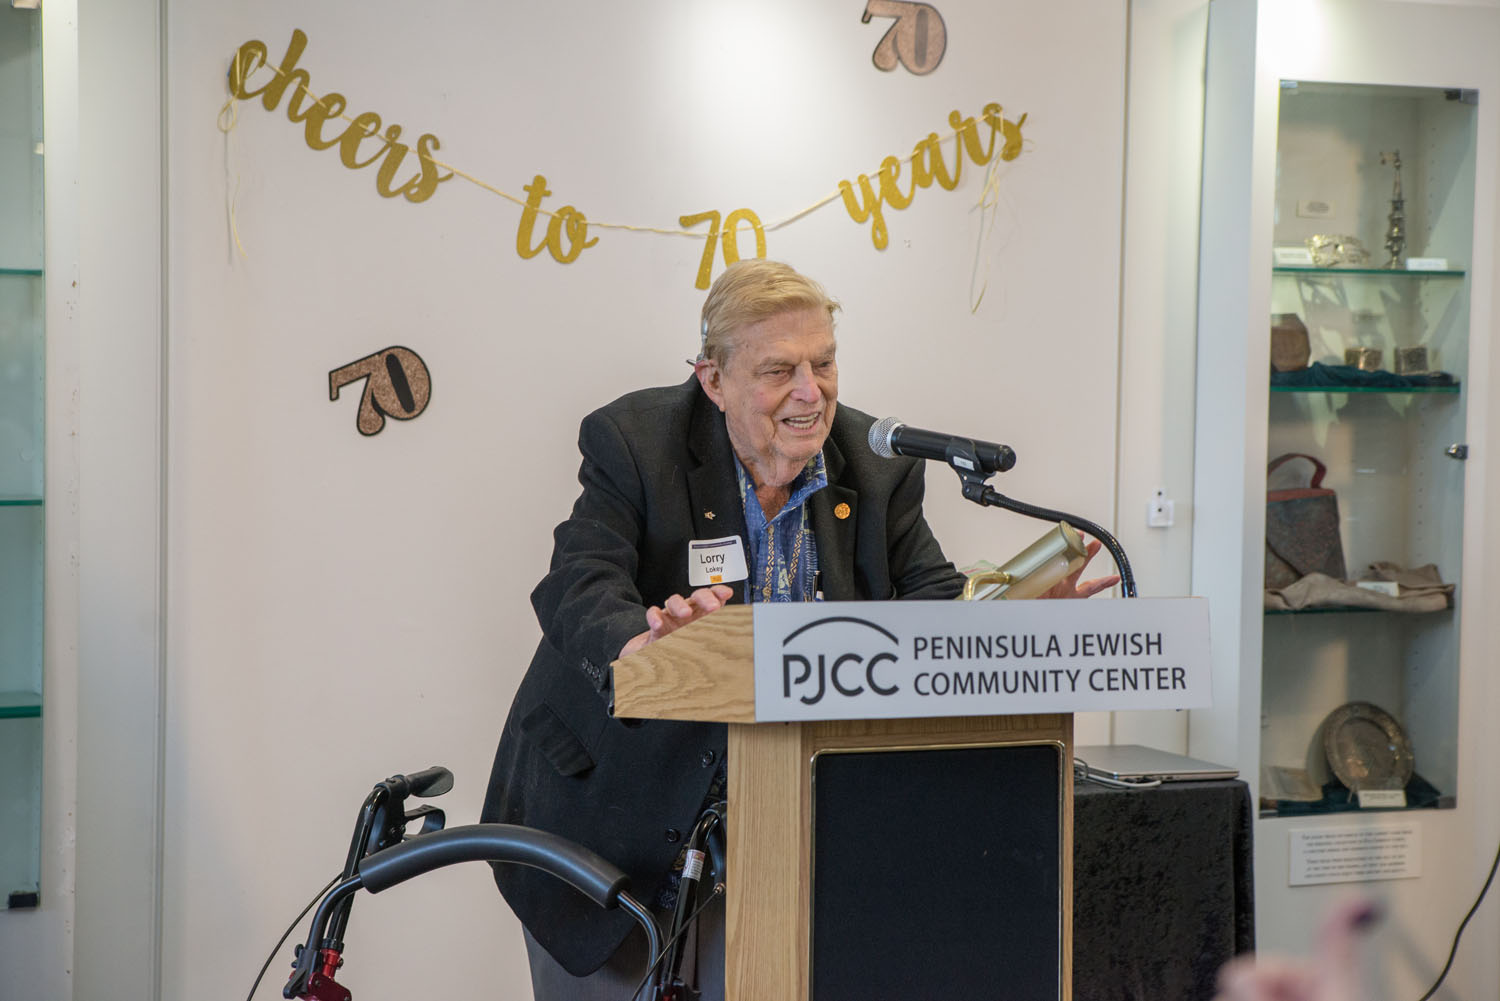 PJCC 70th Anniversary Celebration